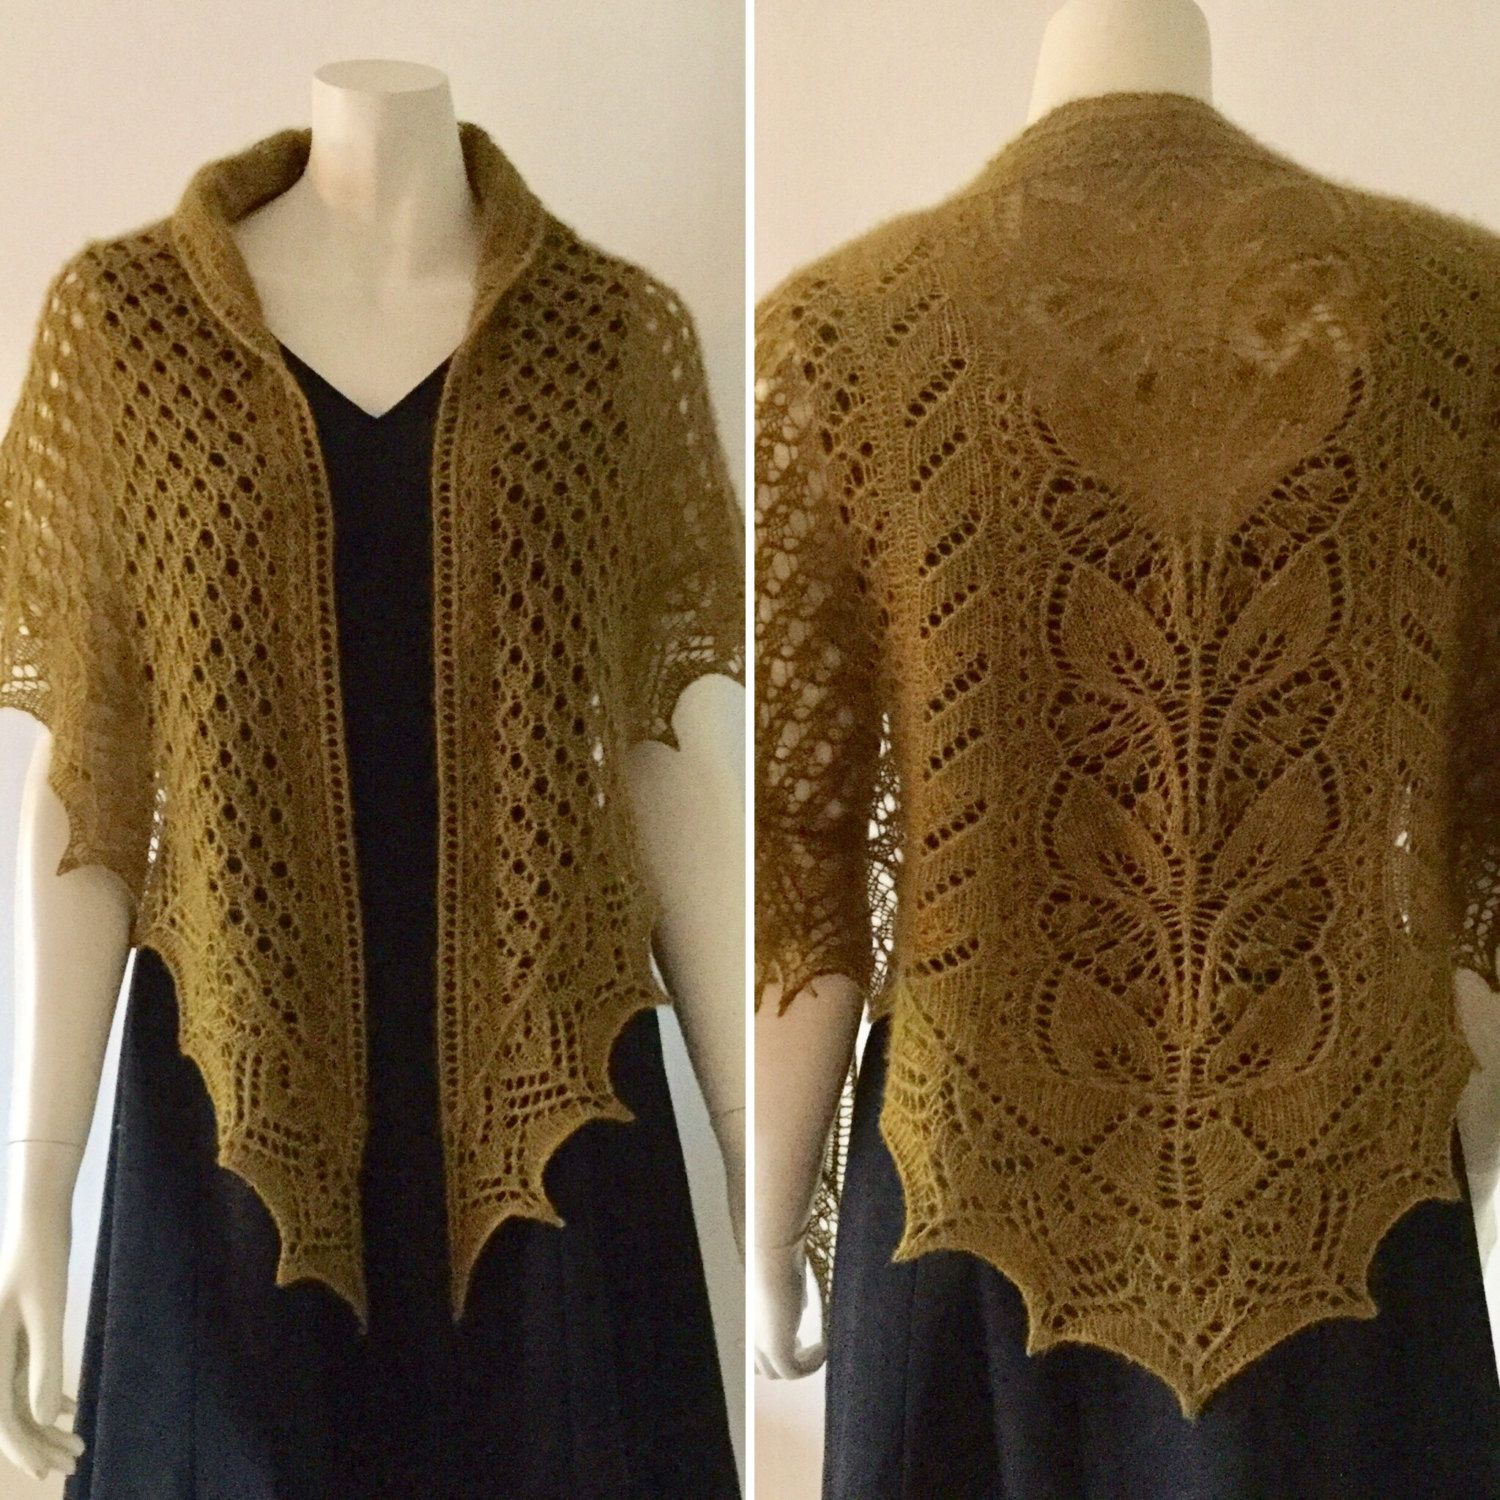 QIVIUT (musk ox) shawl, hand knitted in a beautiful lace pattern ...